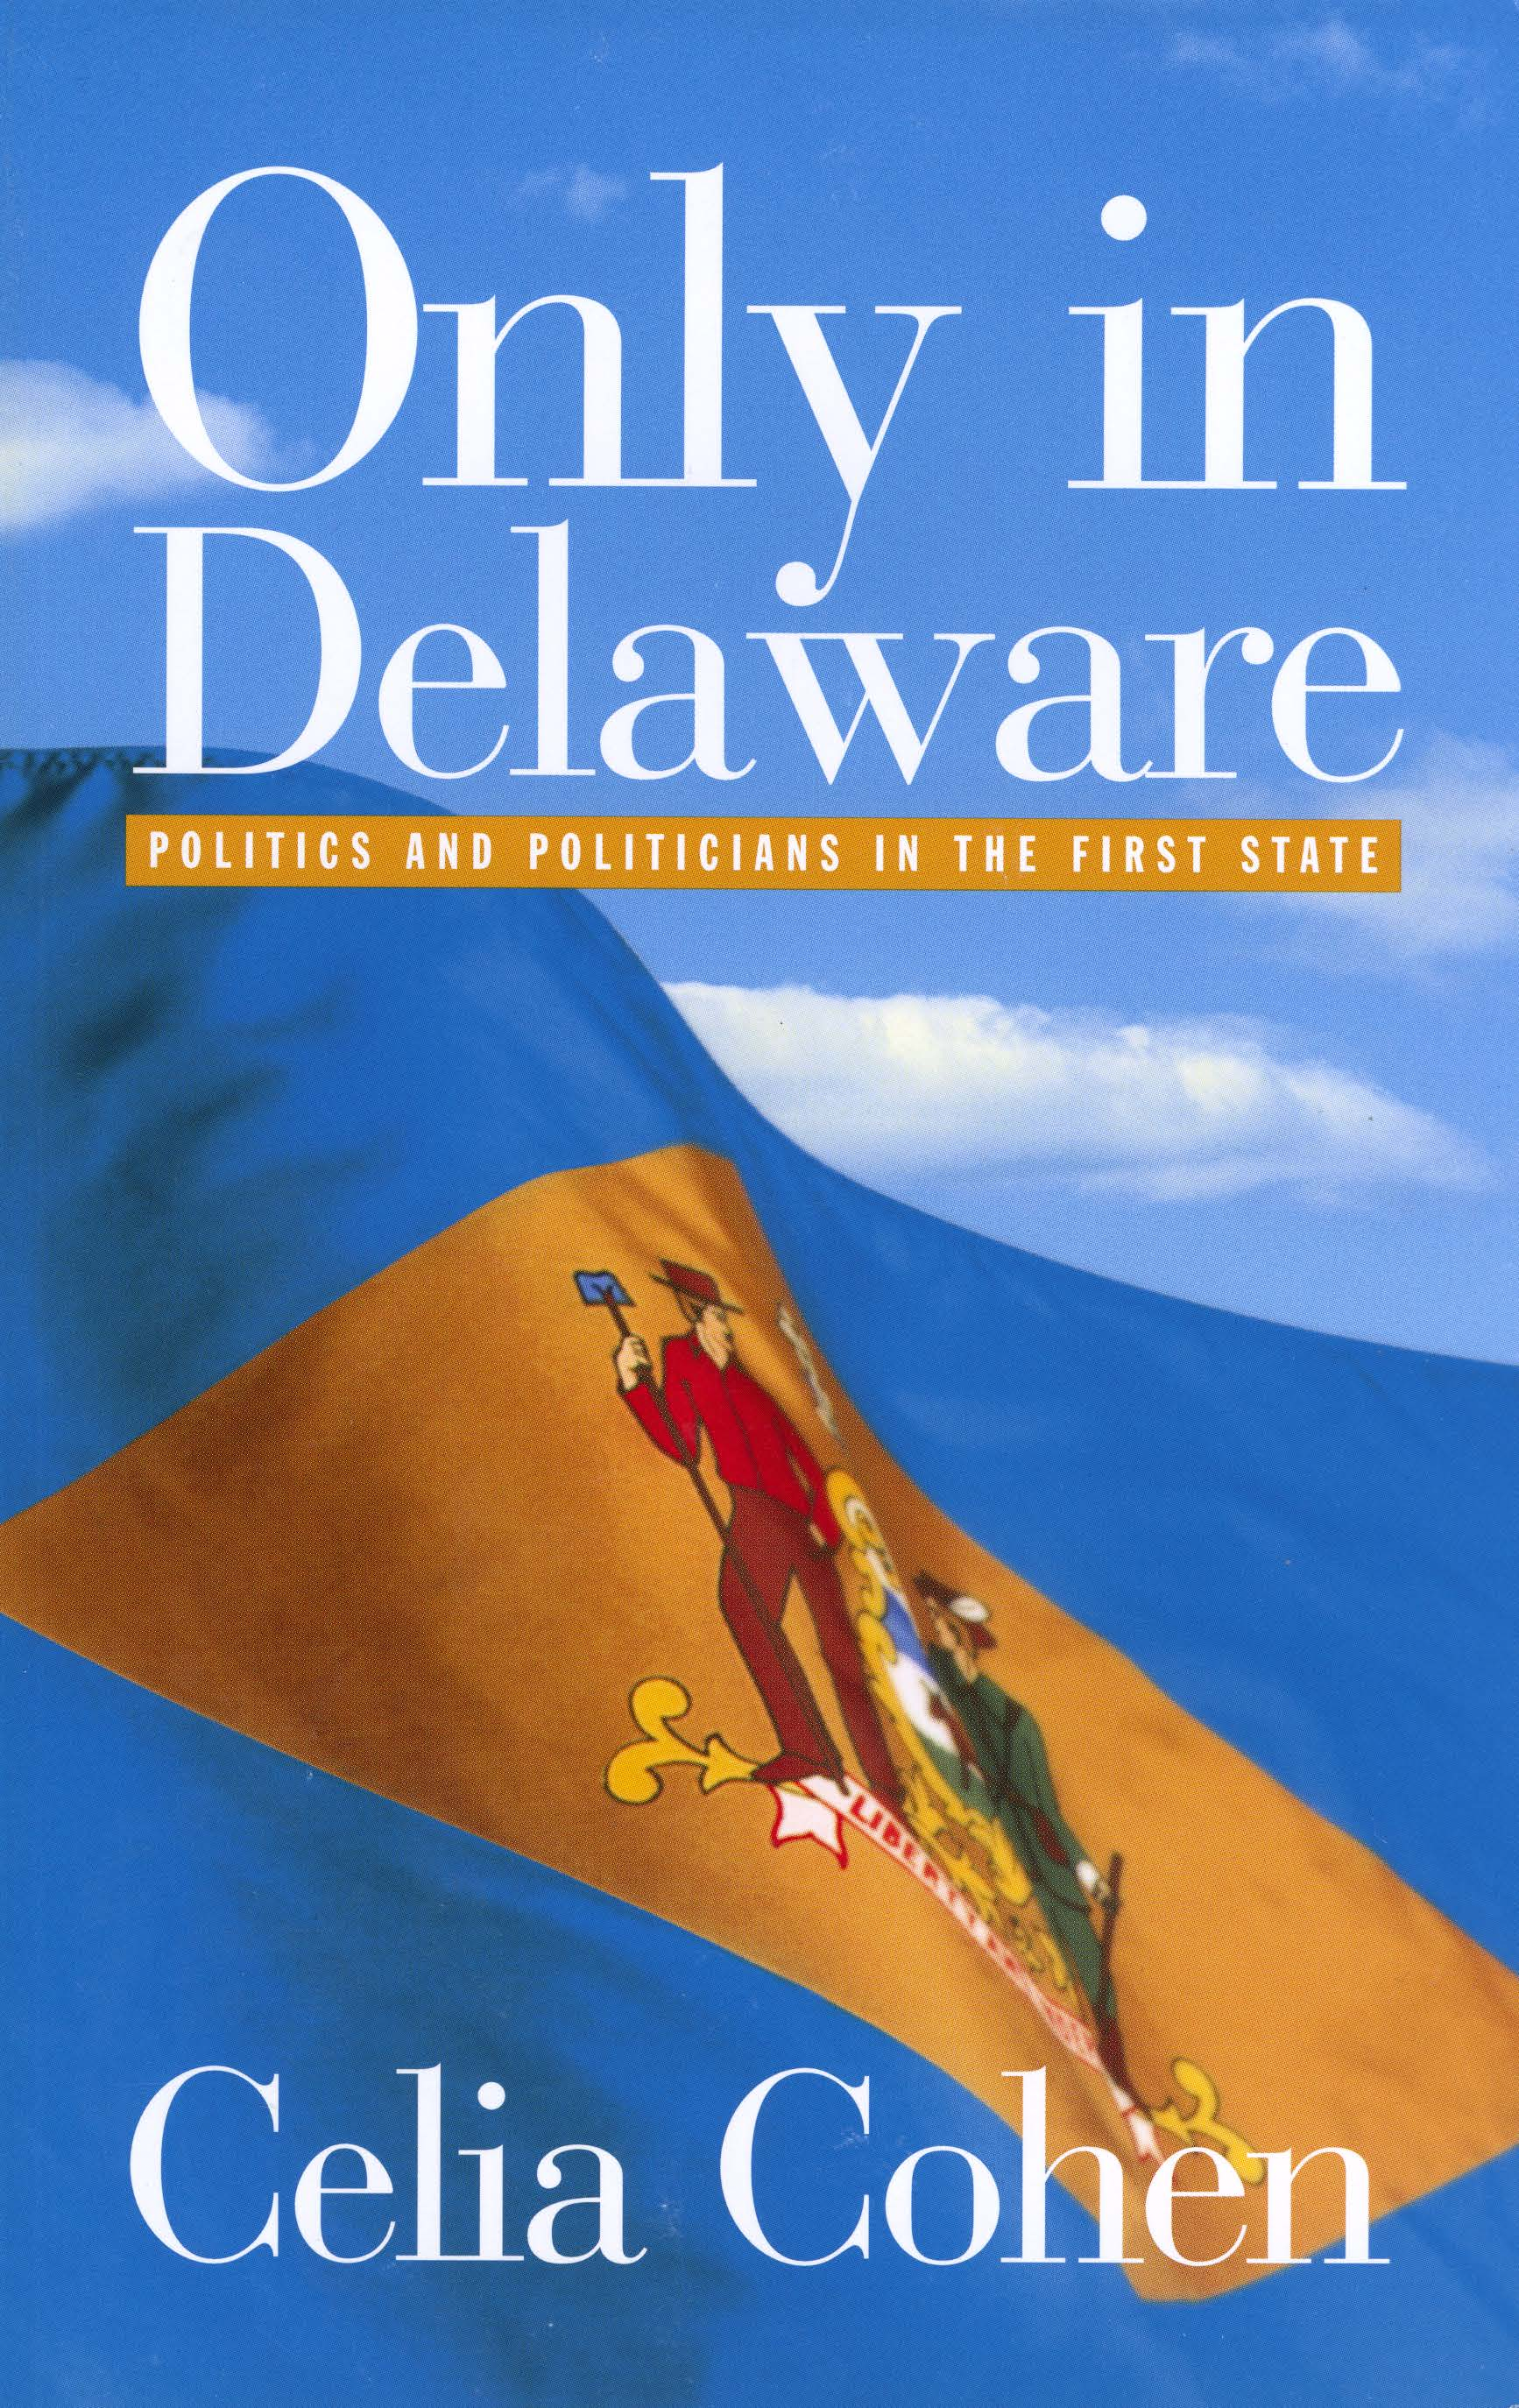 Only in Delaware By: Celia Cohen. Prices reflect the cost of the book PLUS S&H fee of $5.00.